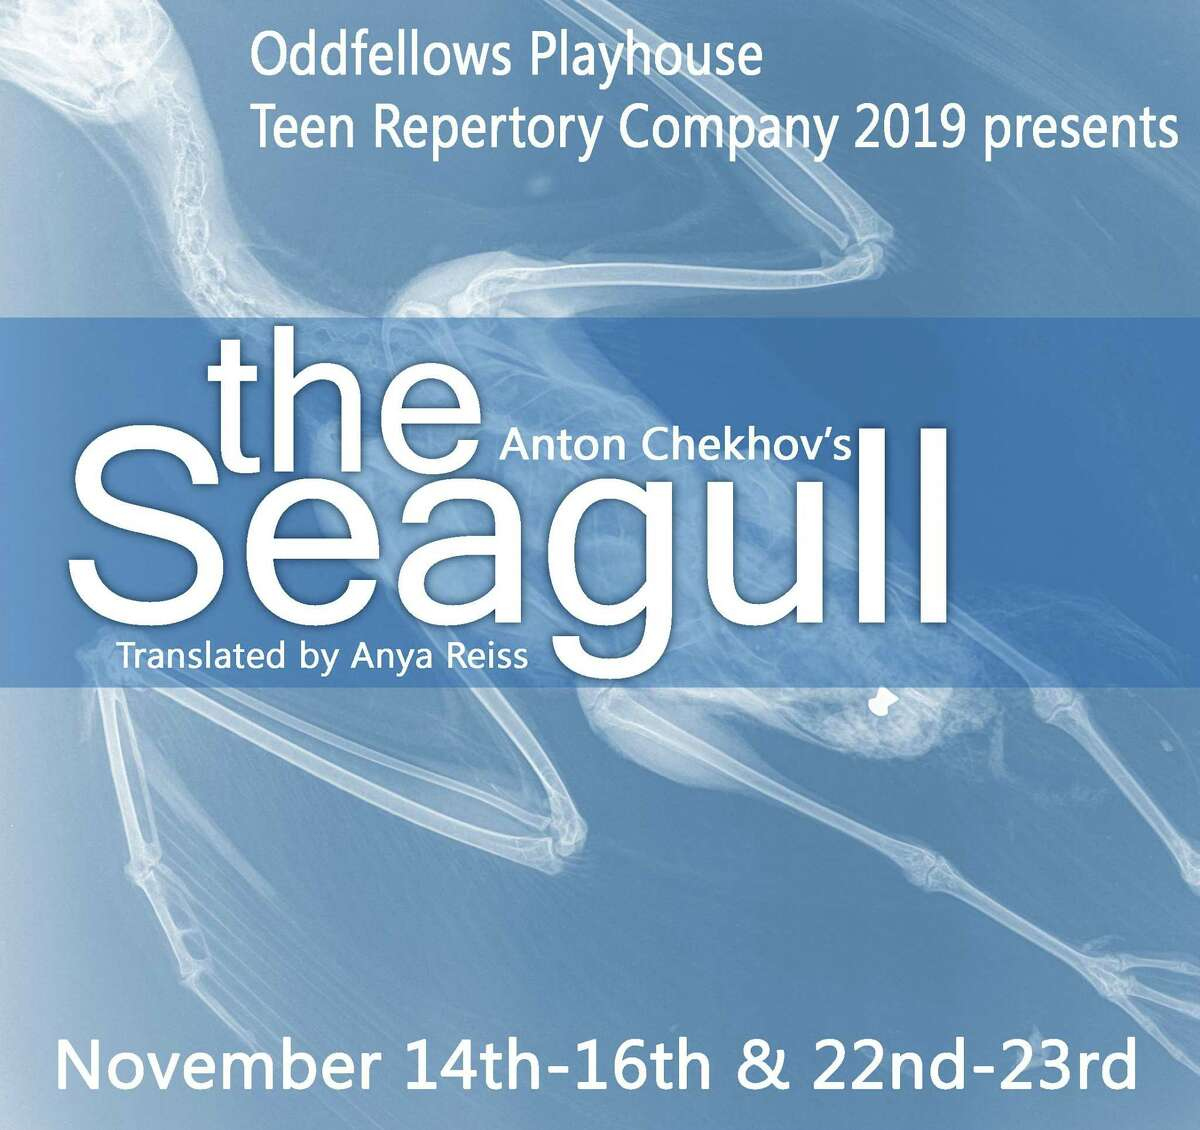 """Oddfellows Playhouse Teen Repertory Company presents Anton Chekhov's classic tragic comedy, """"The Seagull"""" in a contemporary translation by Anya Reiss, Nov. 14-23."""